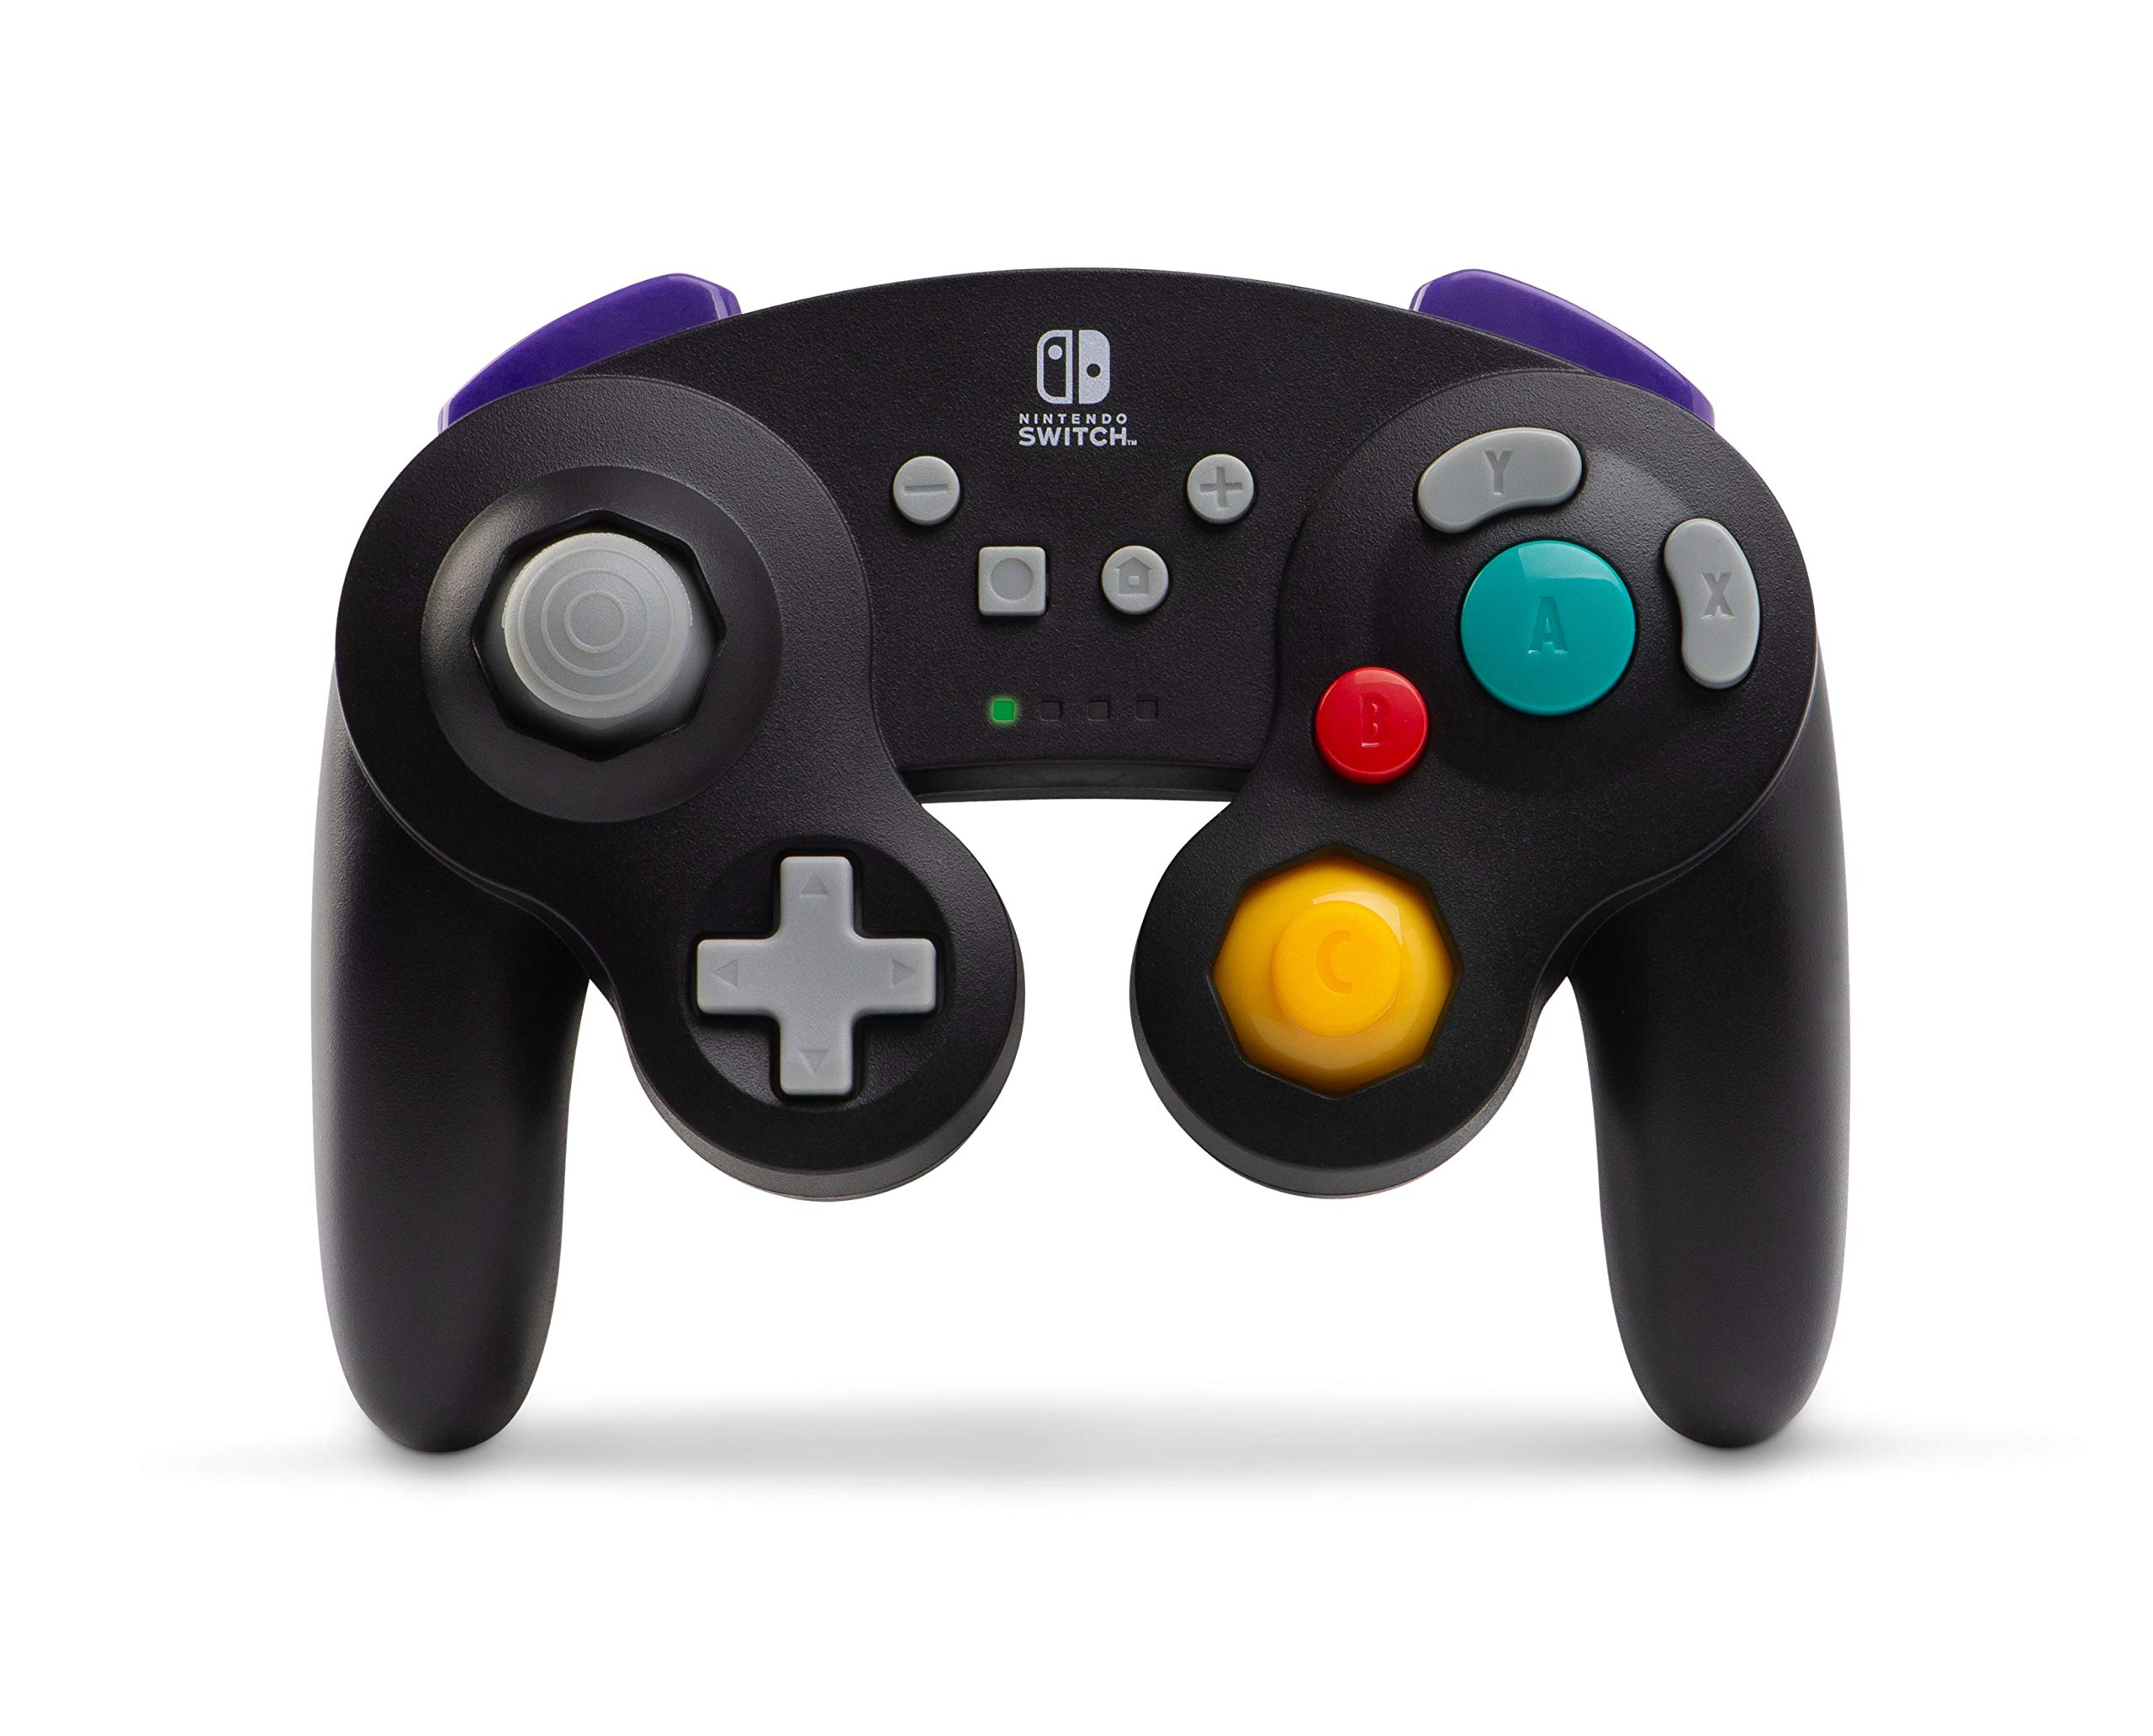 PowerA Wireless GameCube Style Controller for Nintendo Switch - Black